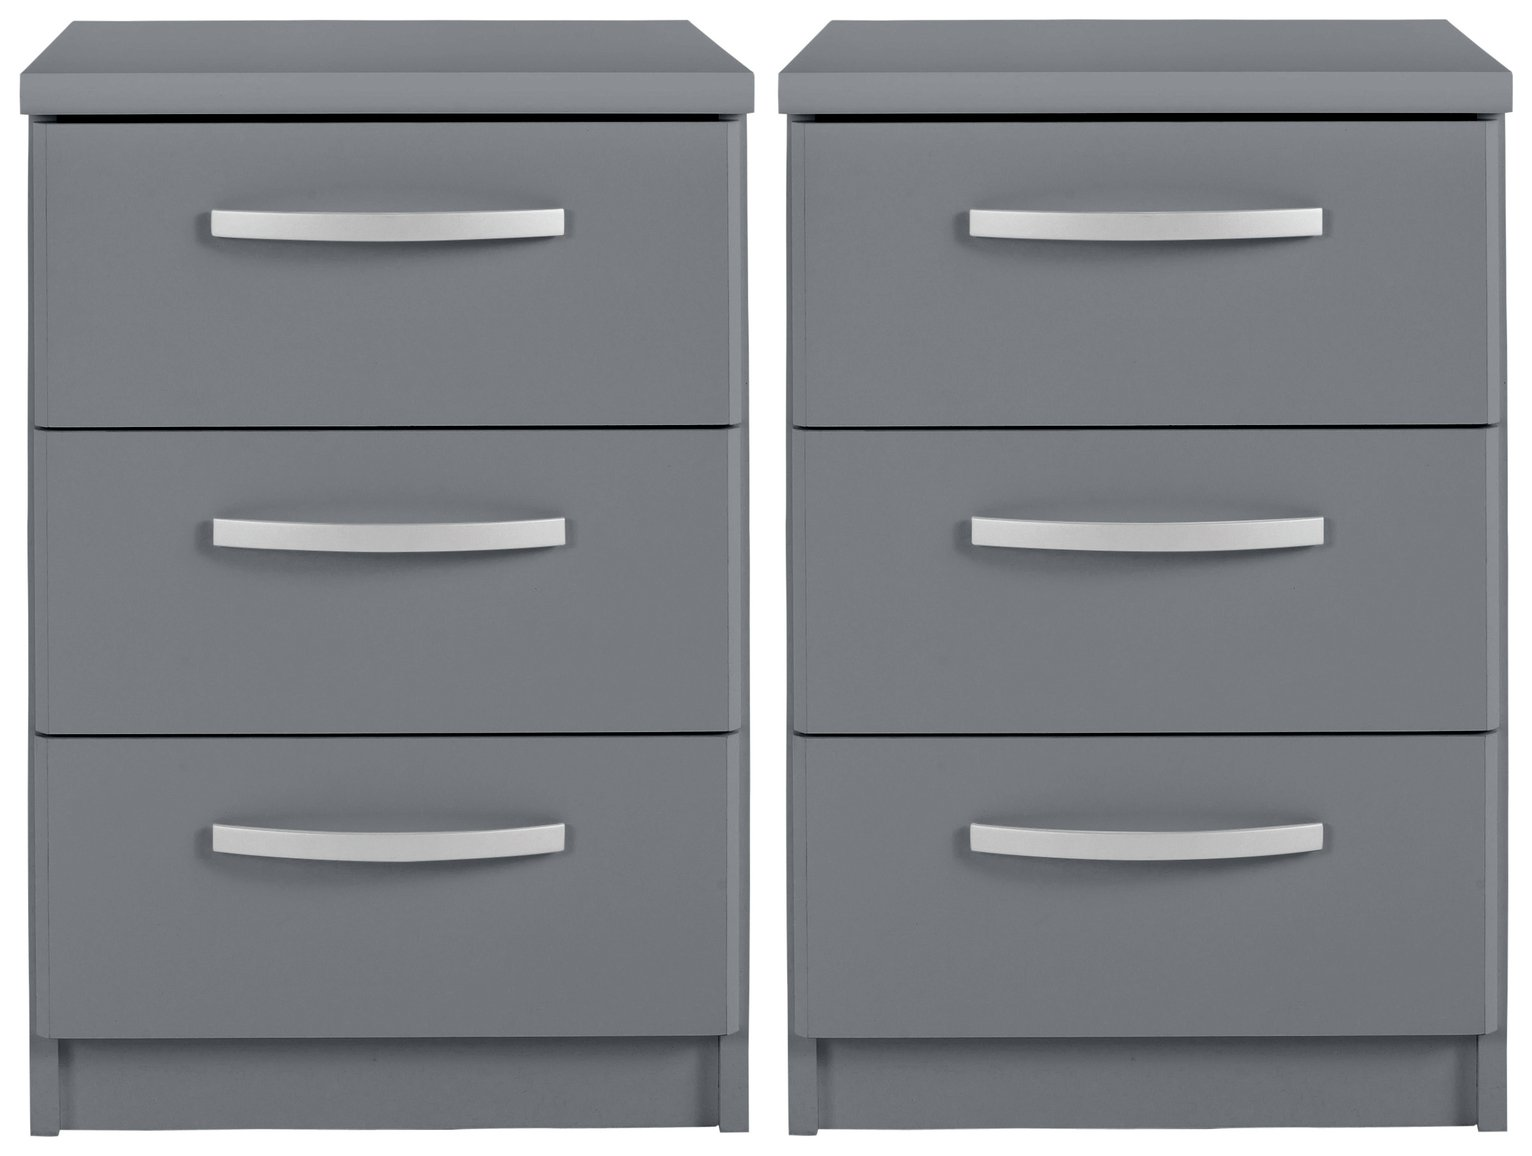 Argos Home Hallingford Gloss 2 Bedside Tables Set - Grey